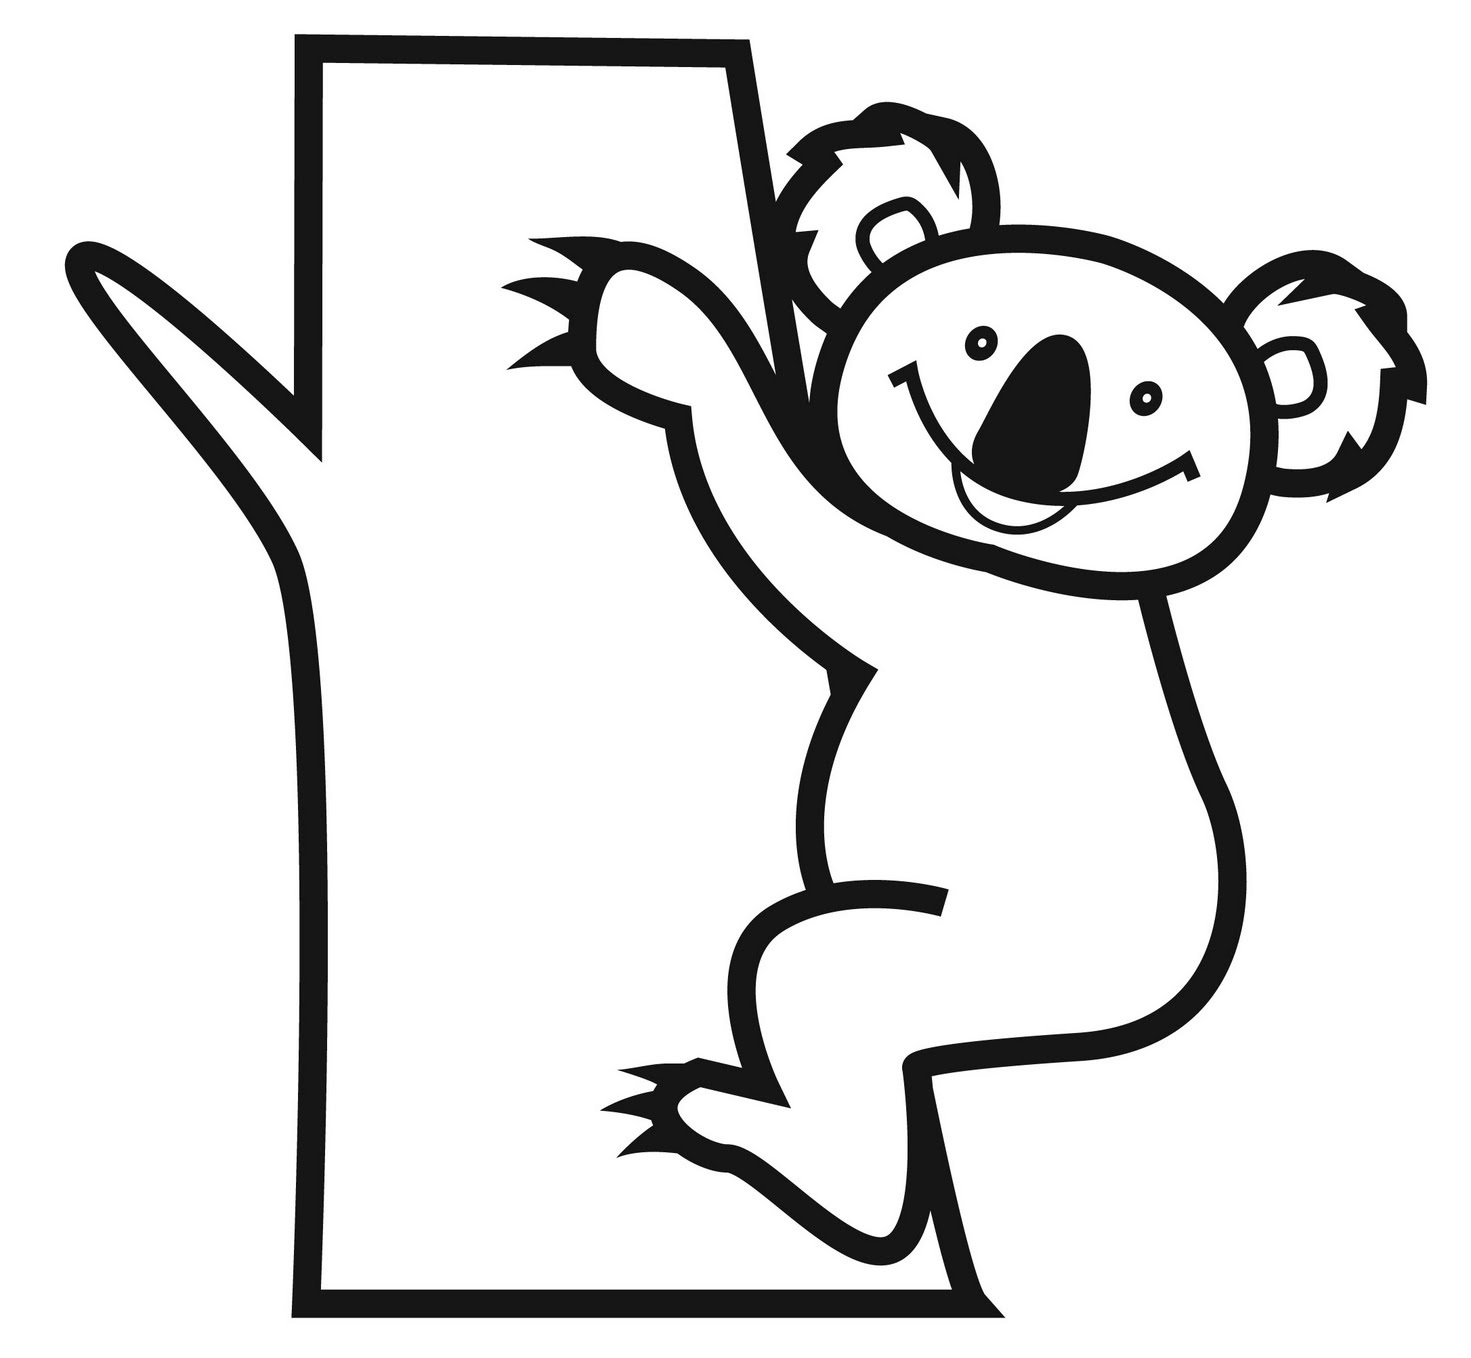 koala pictures to colour in koala cartoon drawing at getdrawings free download pictures koala to in colour